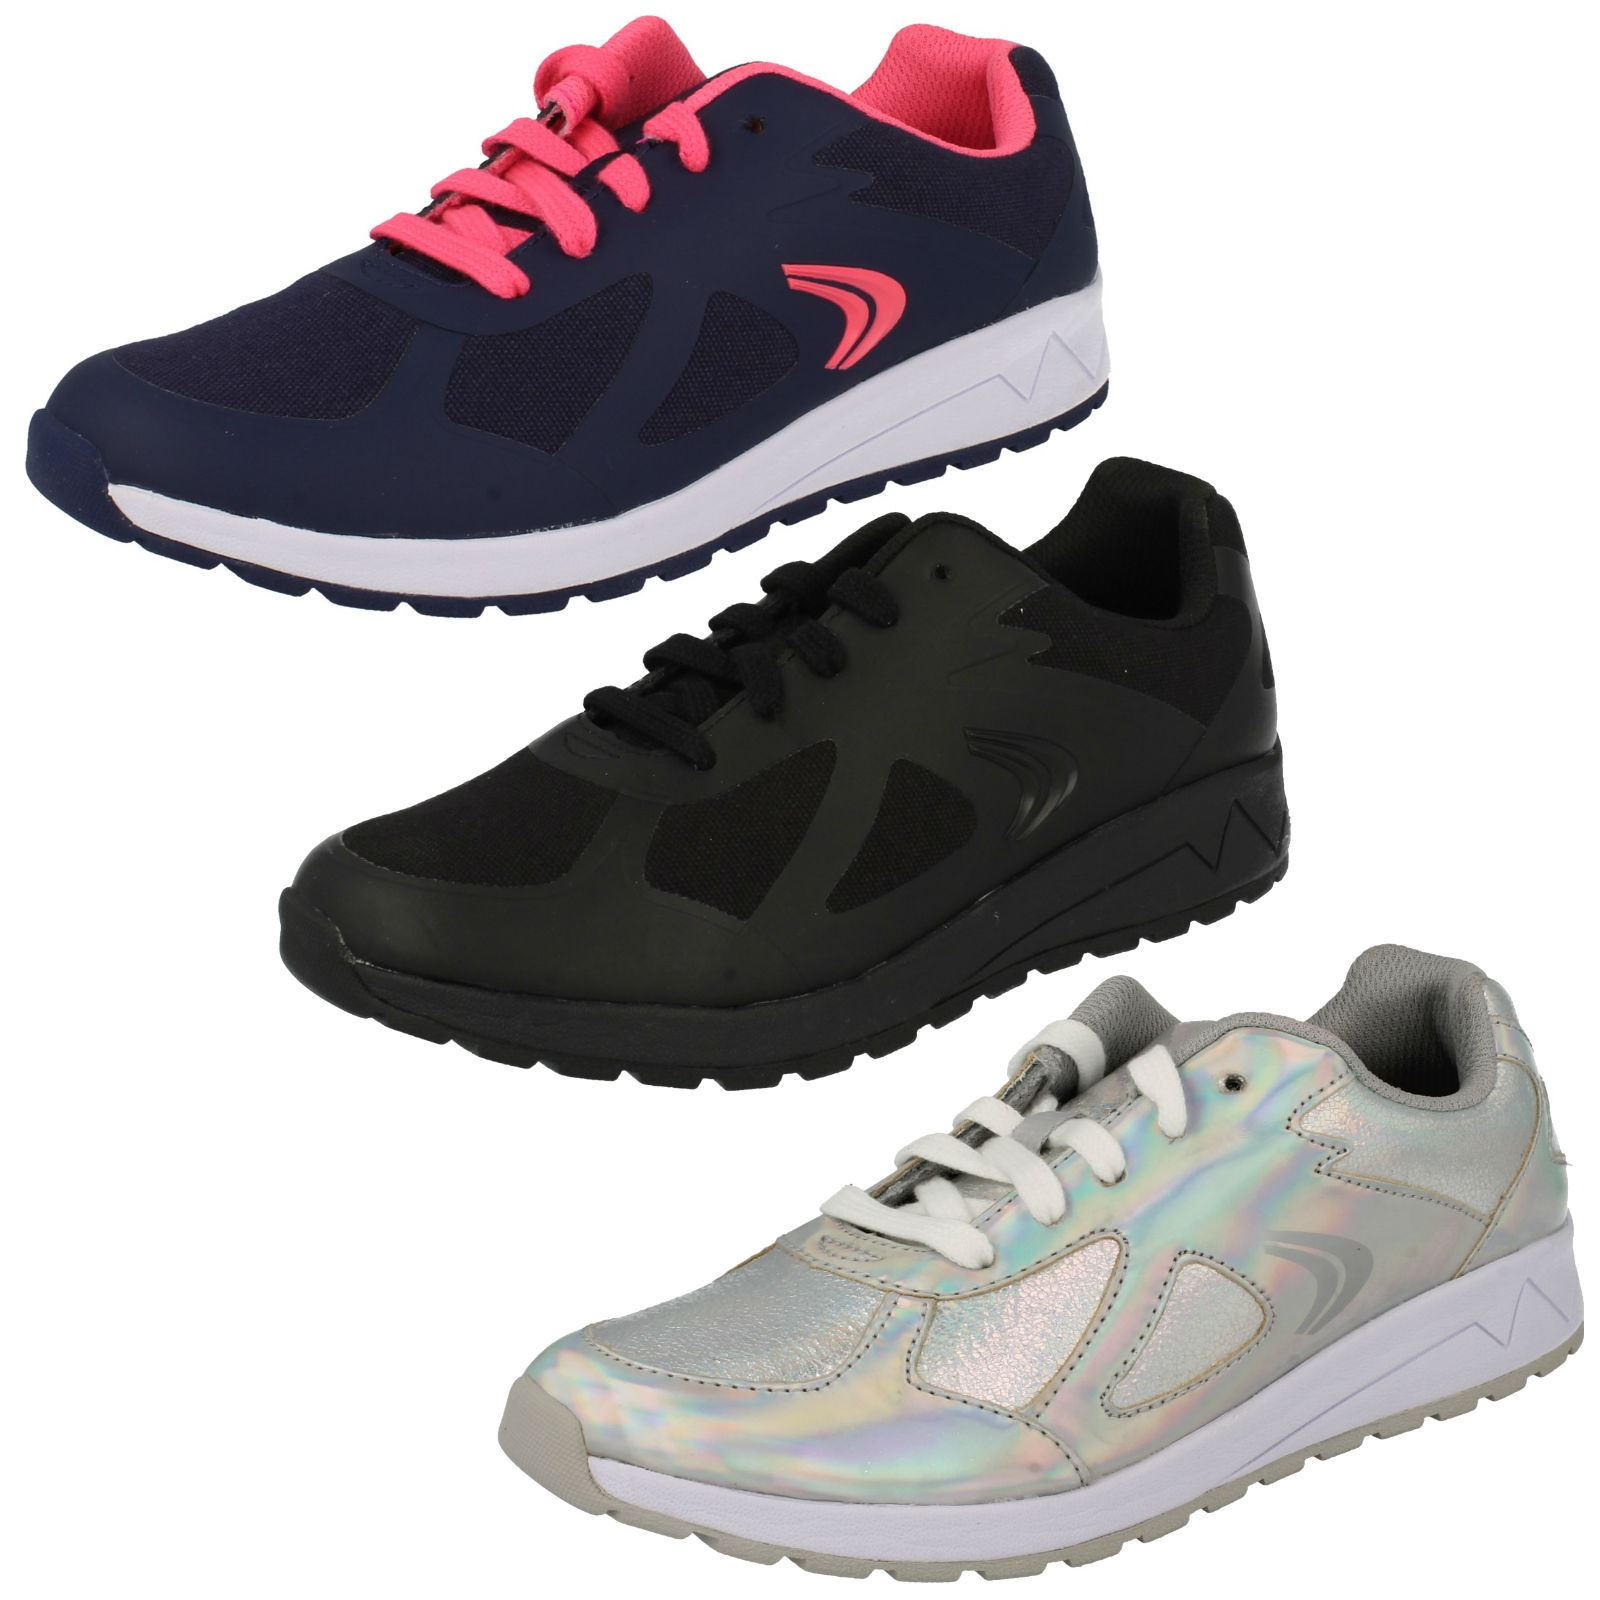 GIRLS JUNIOR CLARKS ADVEN MAZE HOOK /& LOOP SHOES CASUAL SPORTS TRAINERS SIZE